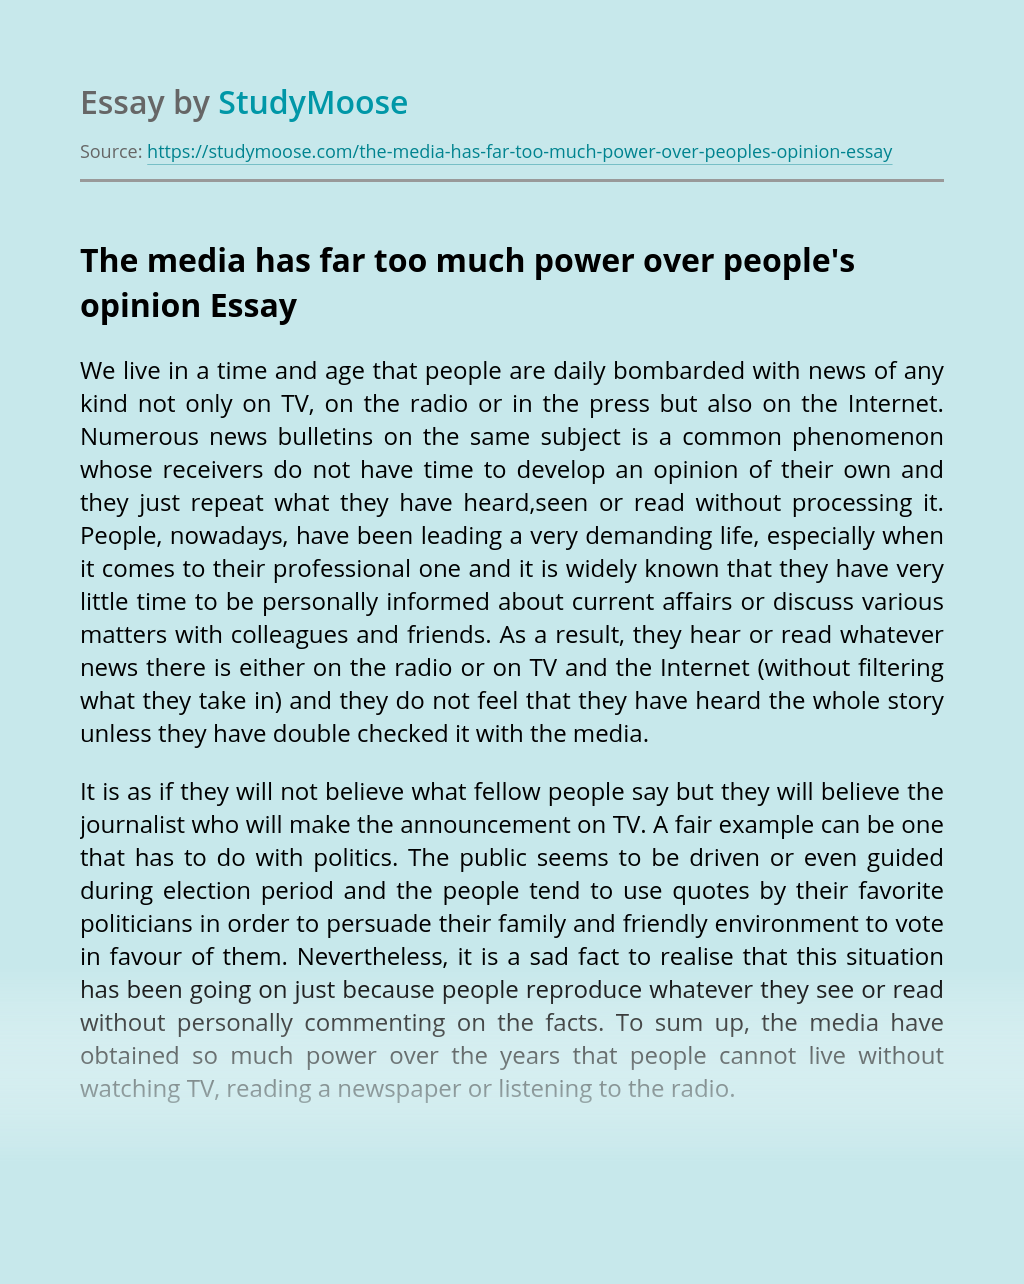 The media has far too much power over people's opinion